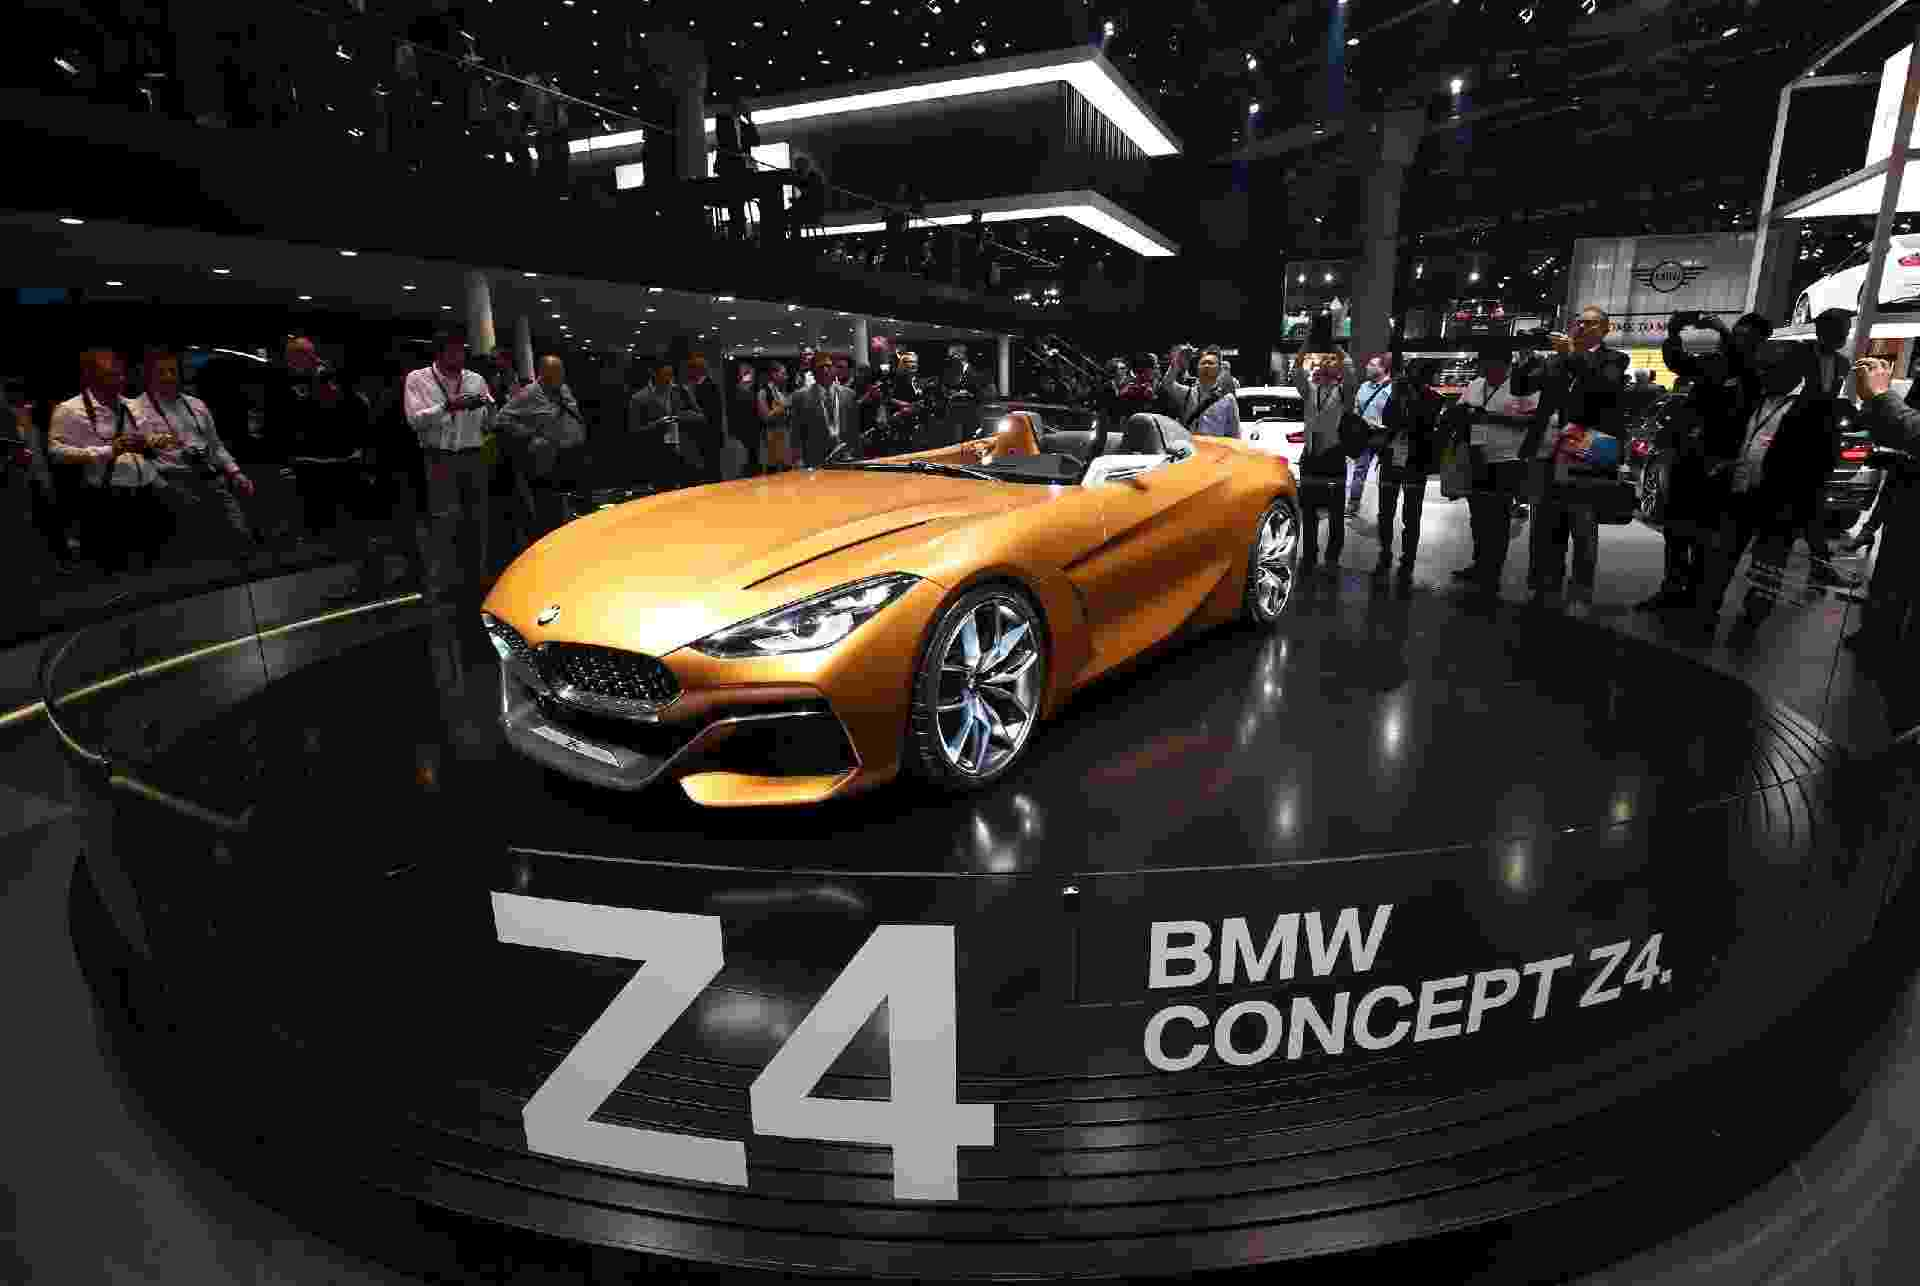 BMW Z4 Concept - Newspress